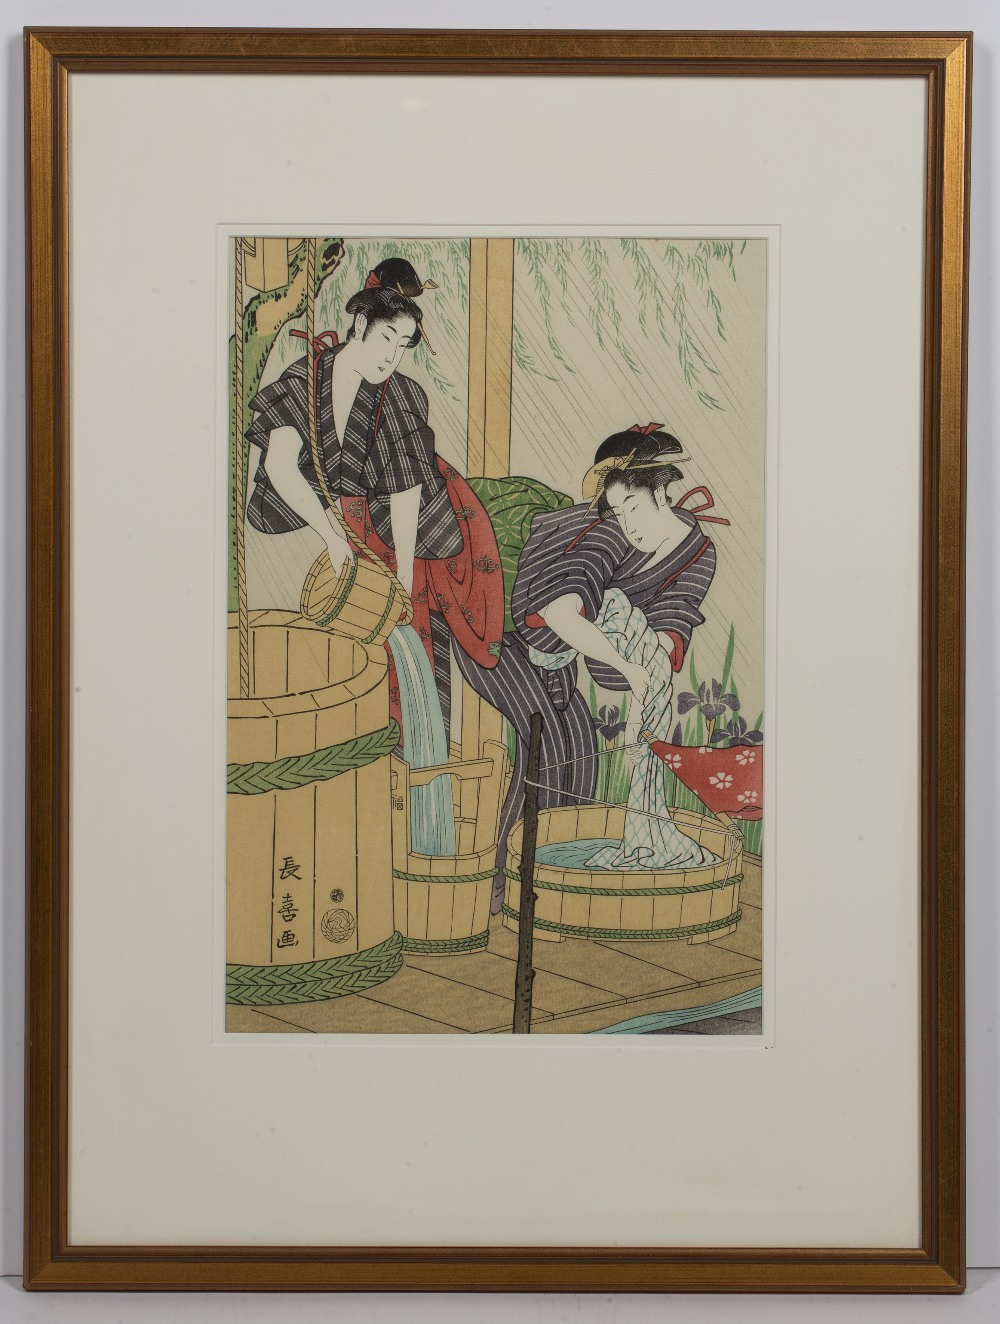 20th Century Japanese 'Two washer women' woodblock print, marked with seals lower left, 36cm x 24. - Image 2 of 3